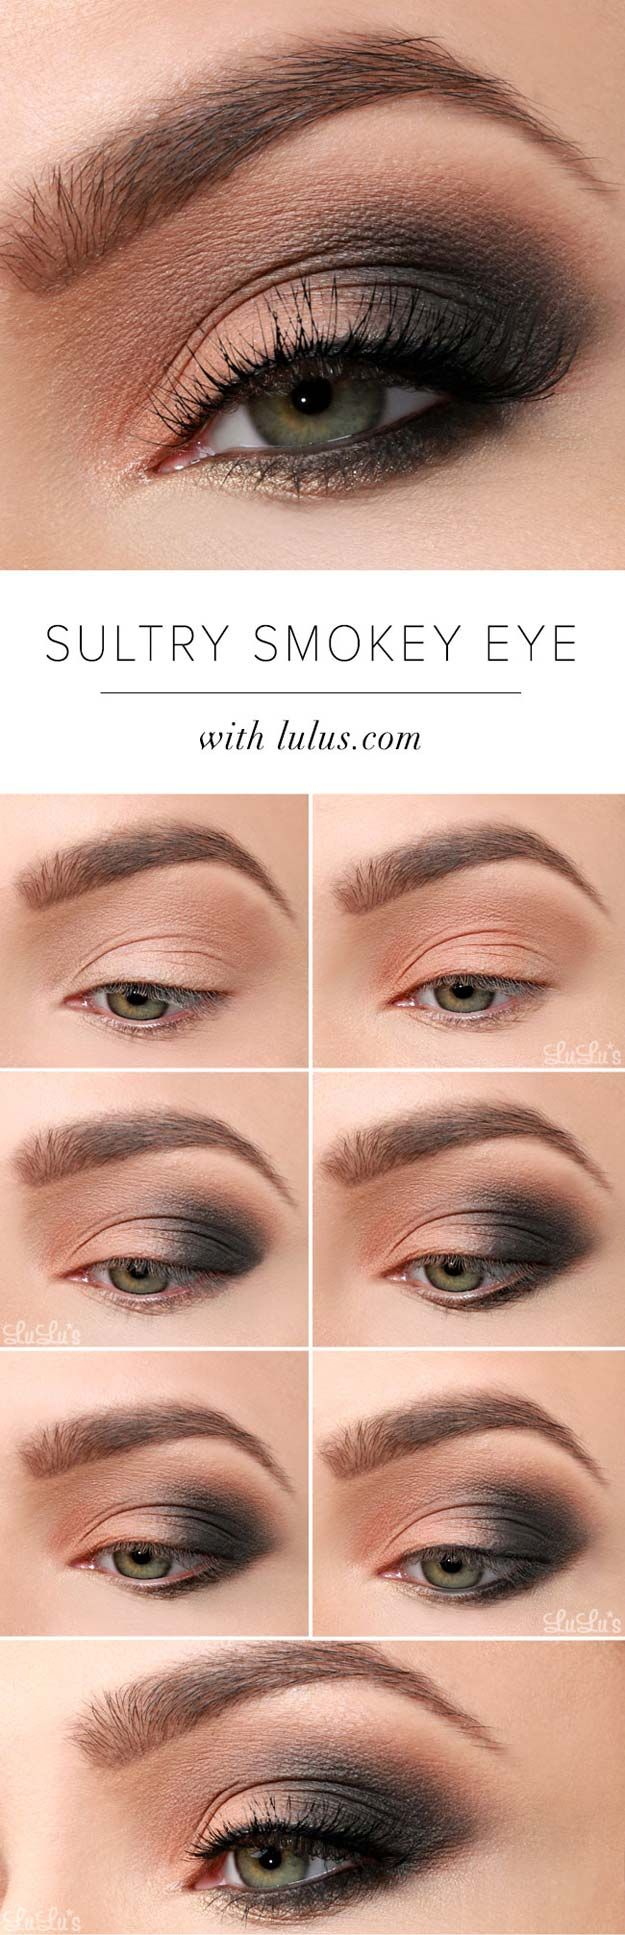 34 Sexy Eye Makeup Tutorials eye makeup to do Sexy eye